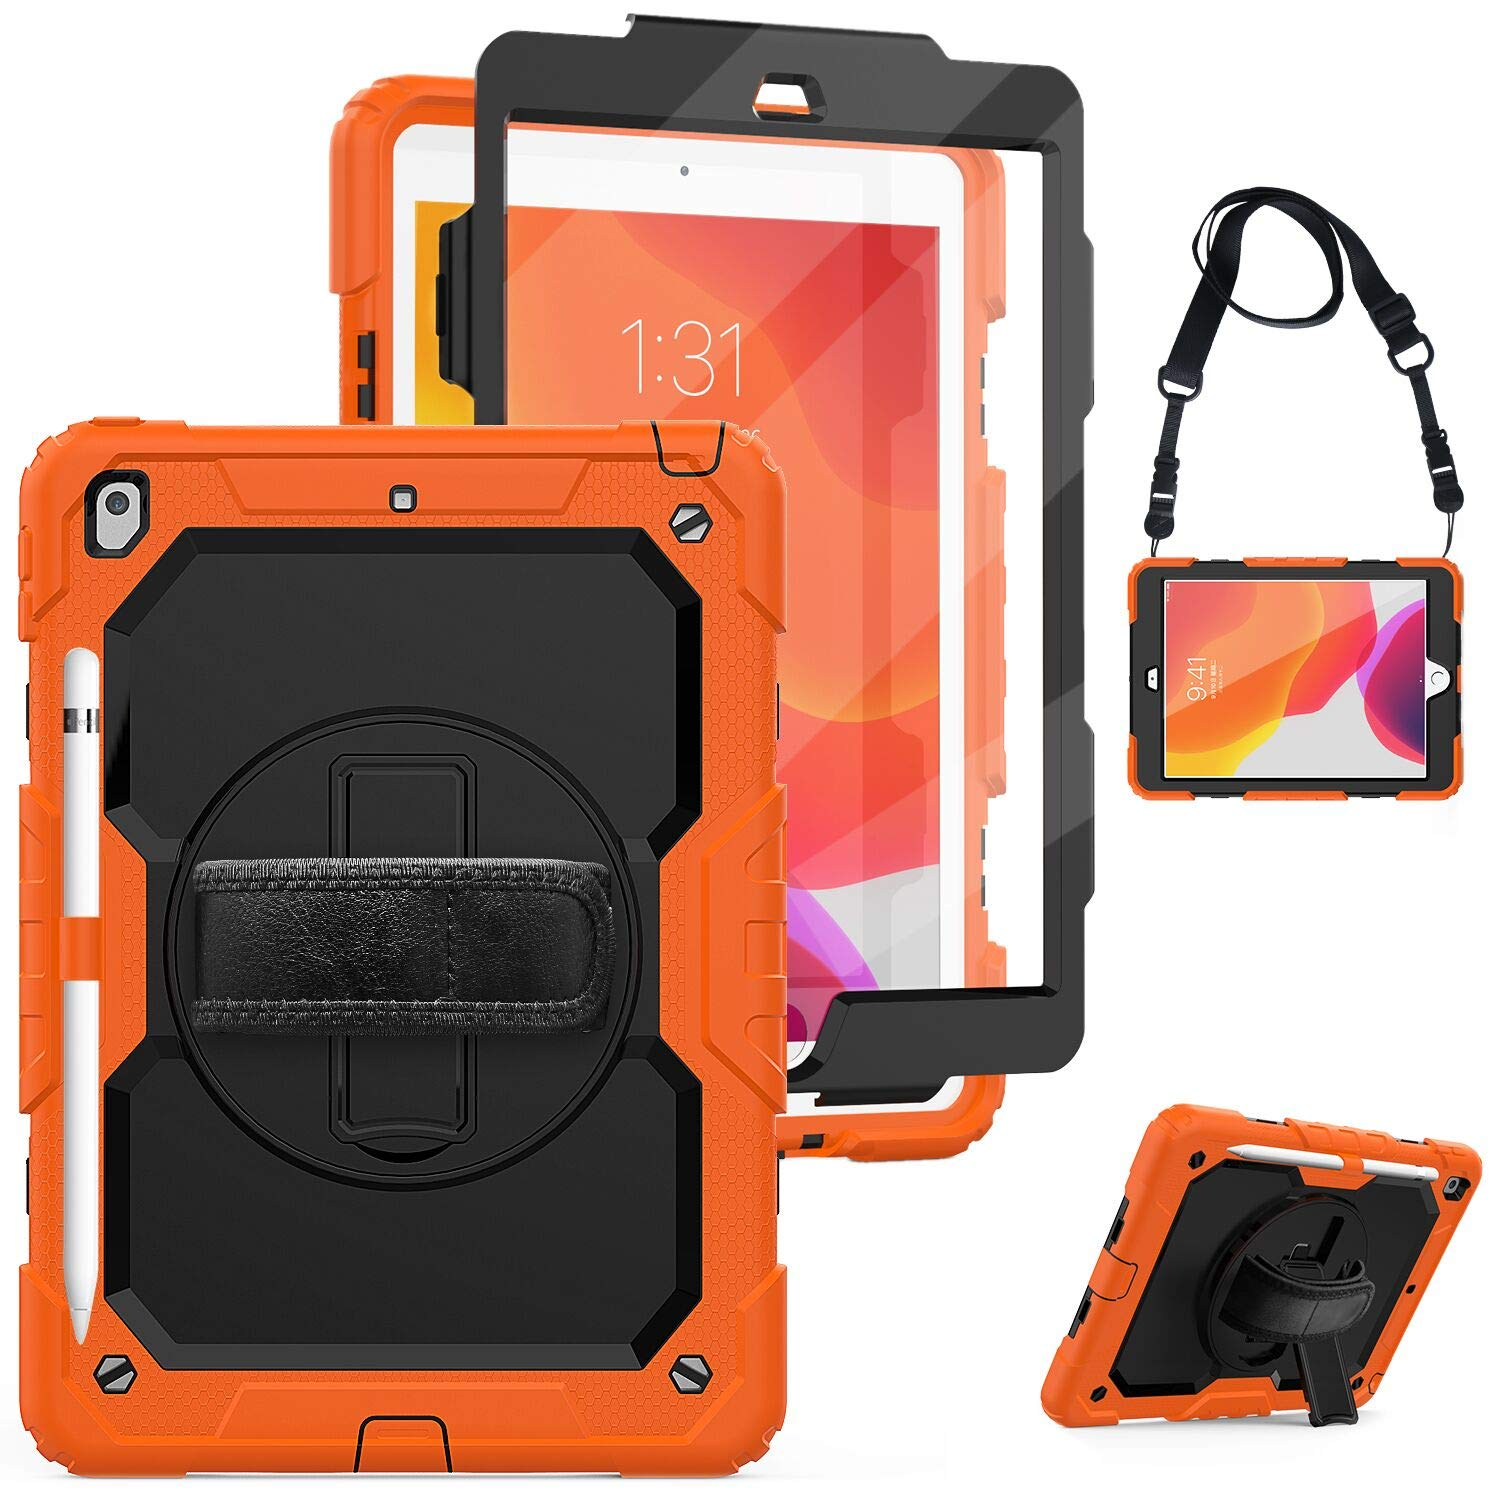 """New iPad 7th Generation 10.2""""Case 2019 with Screen Protector,Herize iPad 10.2 Case with Pencil Holder,Rotatable Stand,Hand Strap&Shoulder Belt,Shockproof Case for Kids,New iPad 10.2 inch Tablet,Orange"""